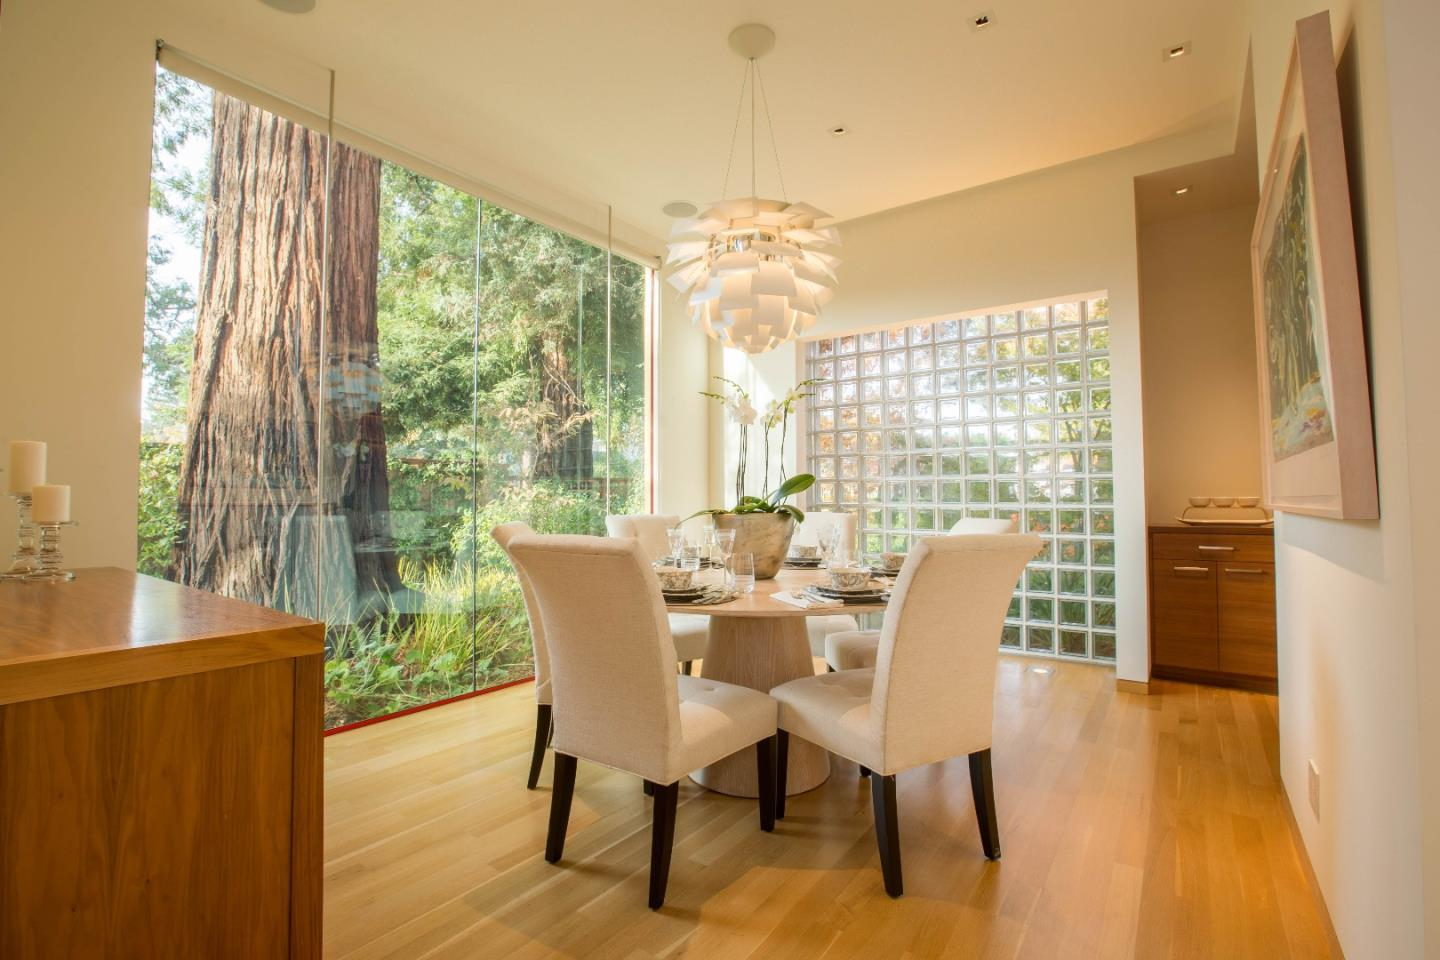 Additional photo for property listing at 625 Hobart St  MENLO PARK, CALIFORNIA 94025